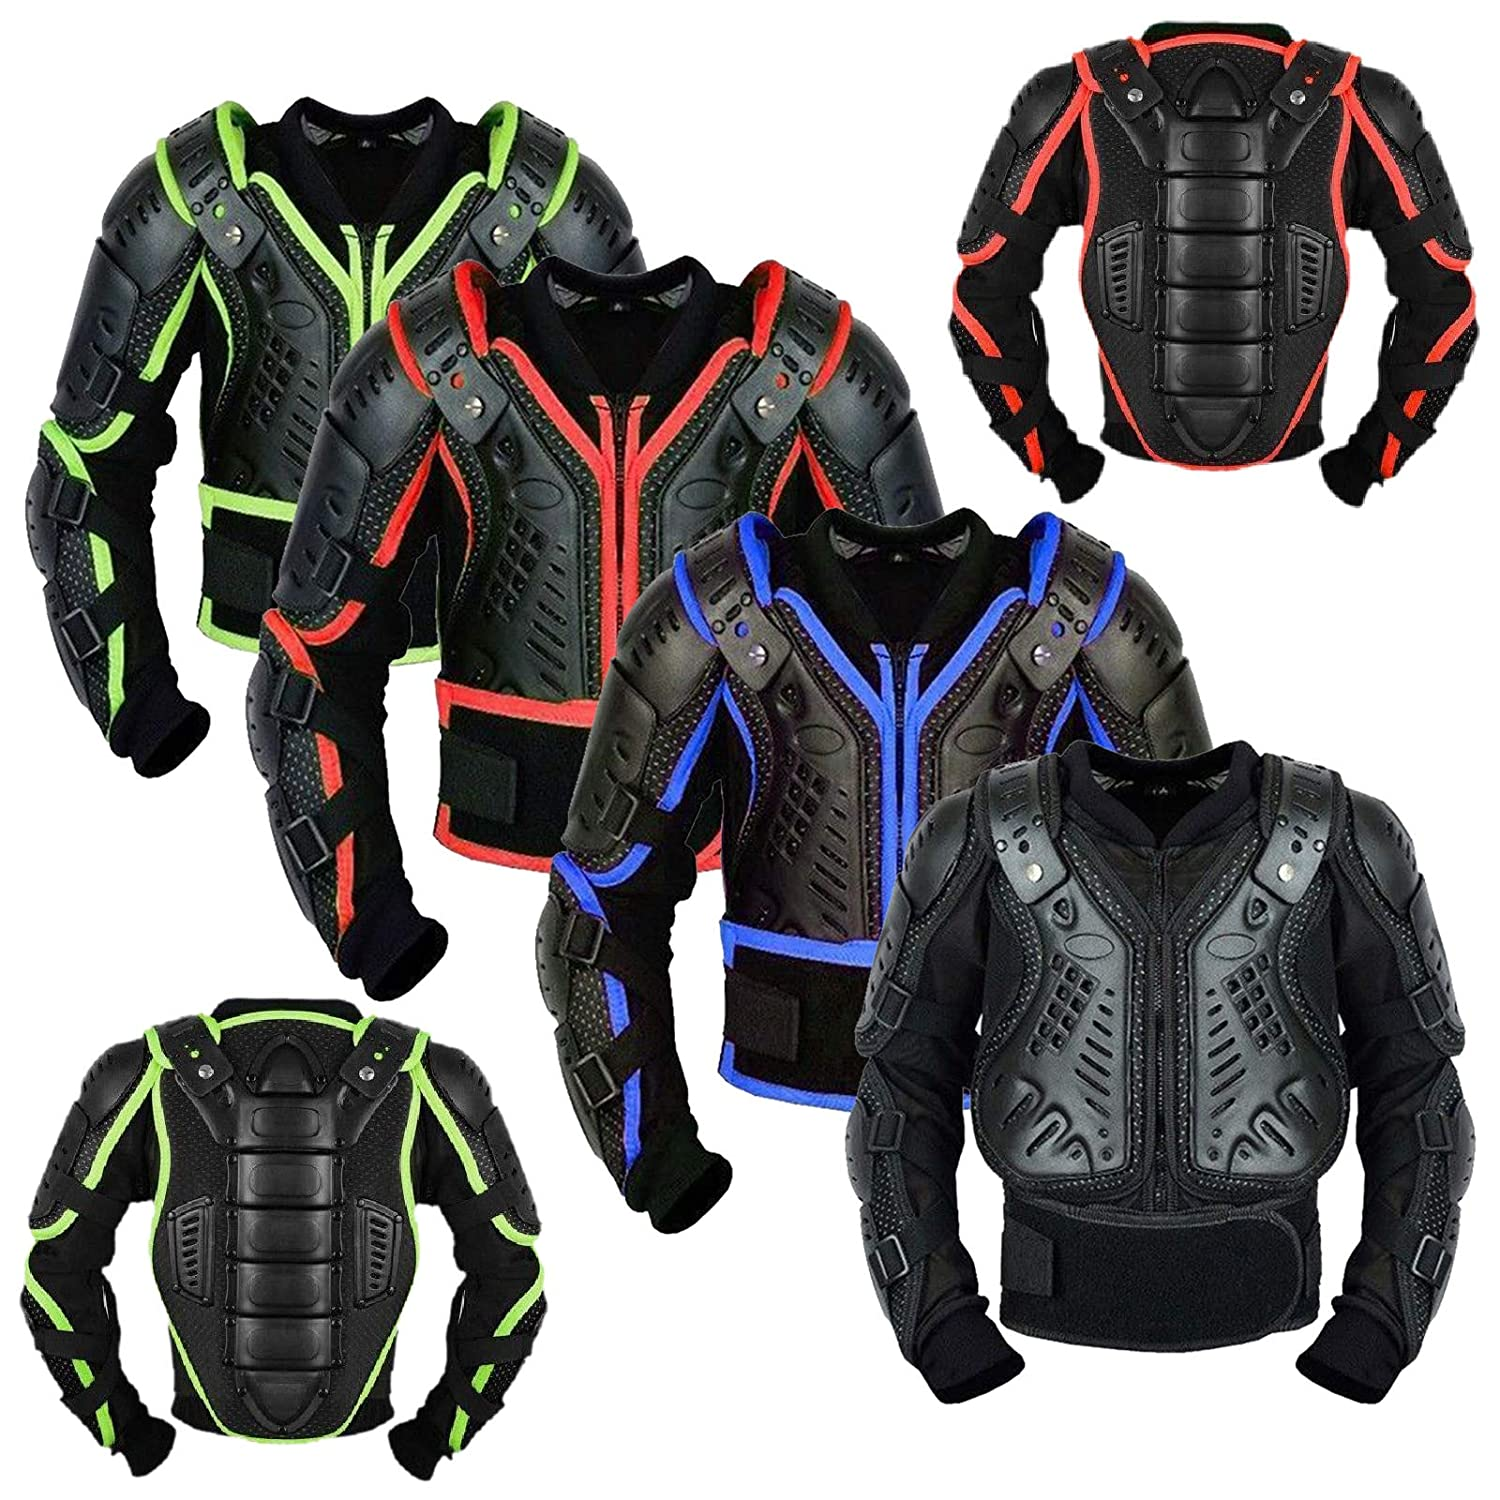 Kids Motorbike Body Armours Motorcycle Gear Armors Motorcross Bikes Guard CE Approved Child Protection Jacket - Year 10 REXTEK KAB-1